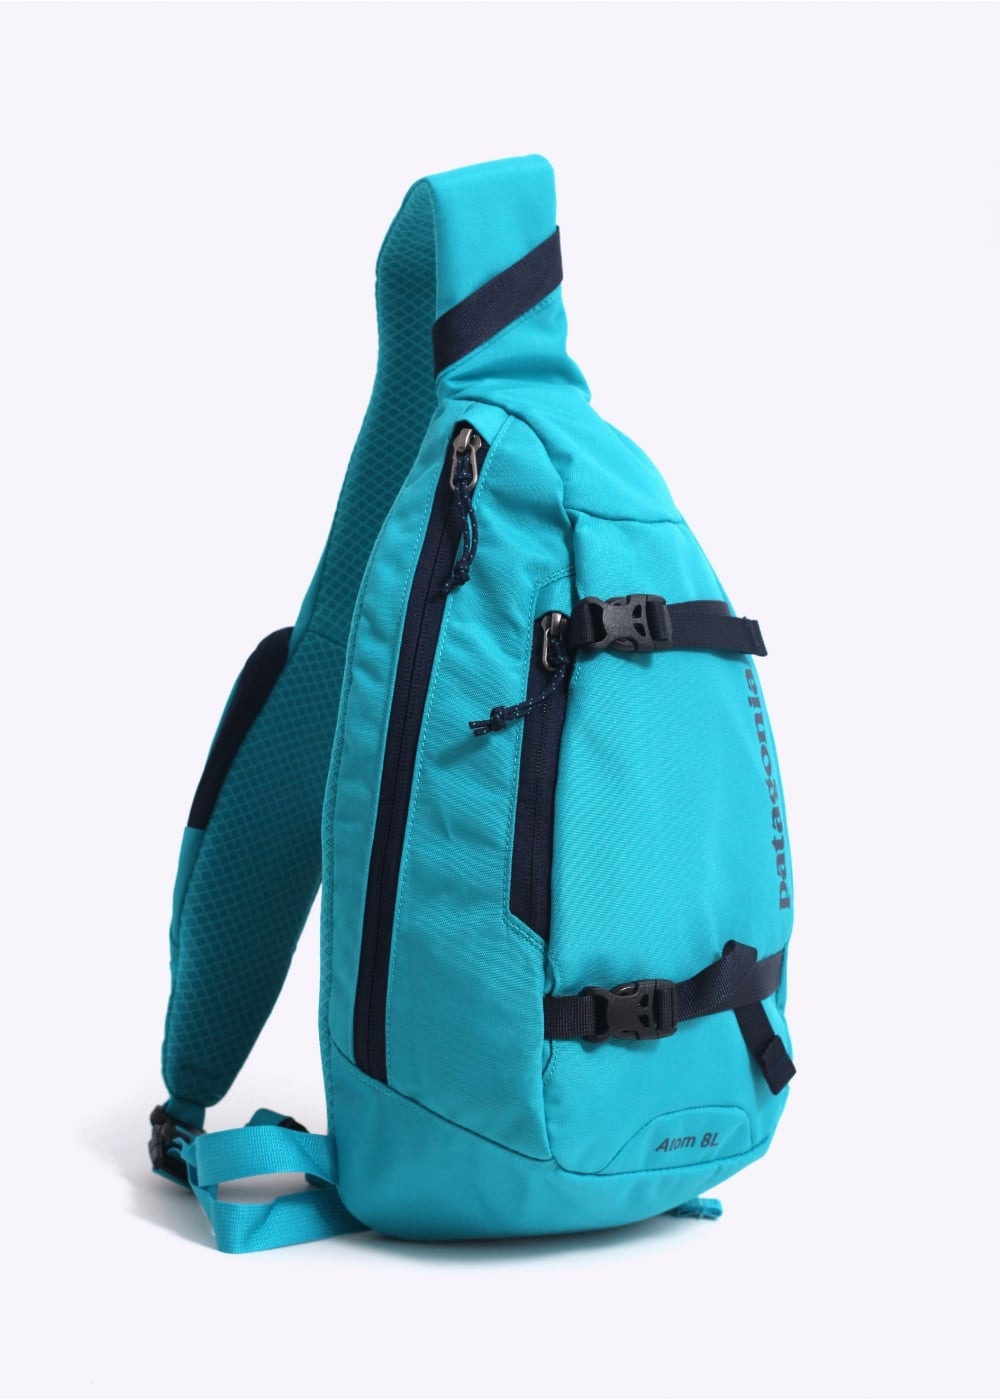 Patagonia Atom Sling Bag - Epic Blue - Bags from Triads UK